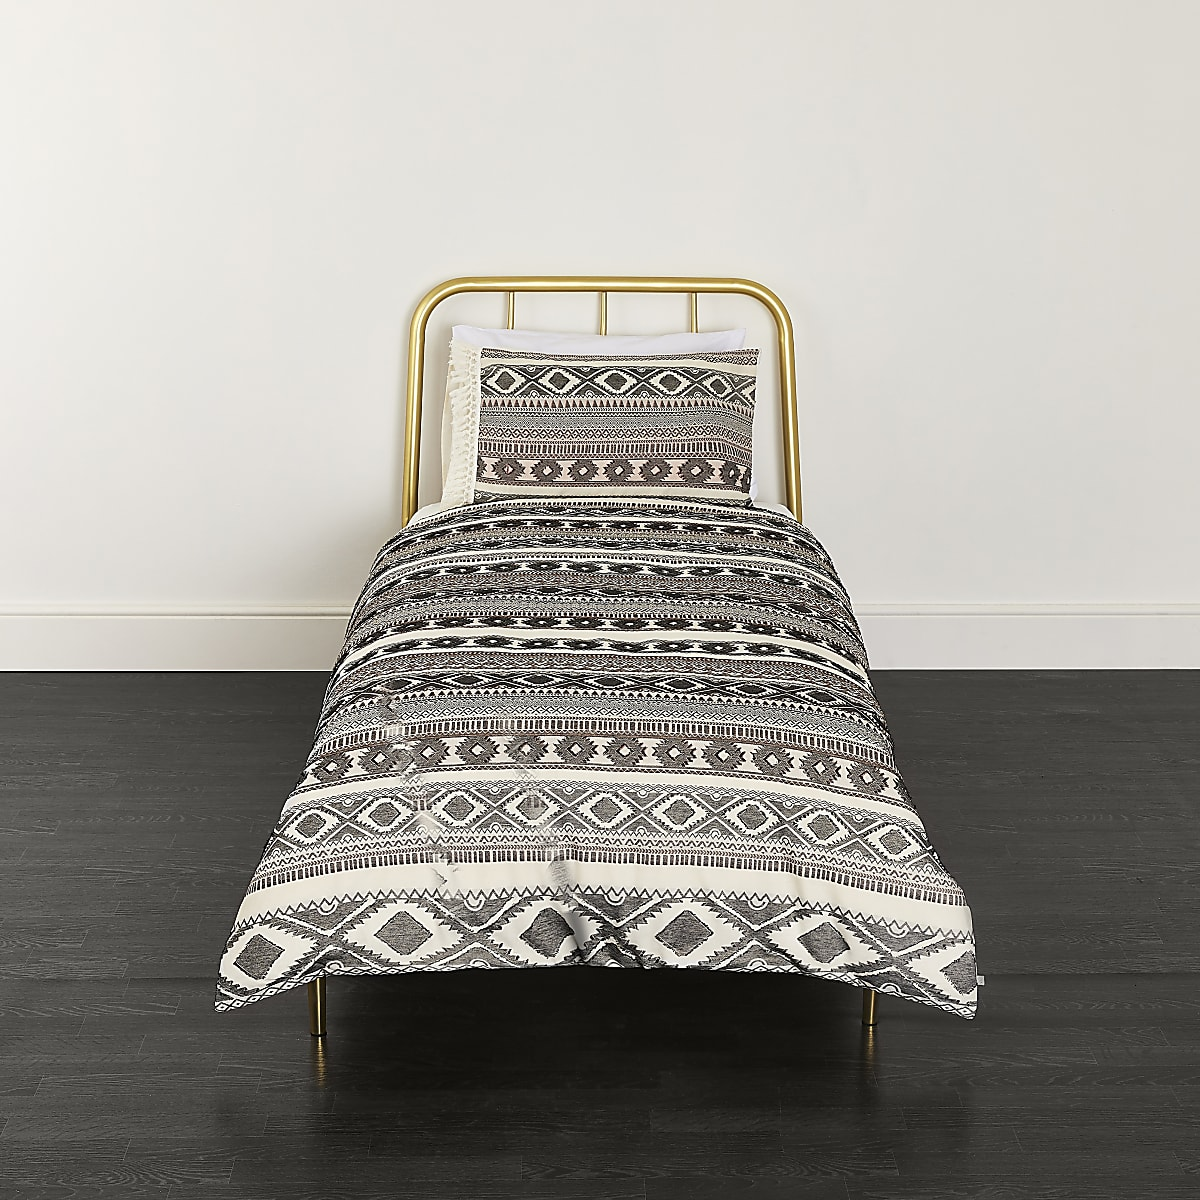 Cream Aztec jacquard single duvet bed set